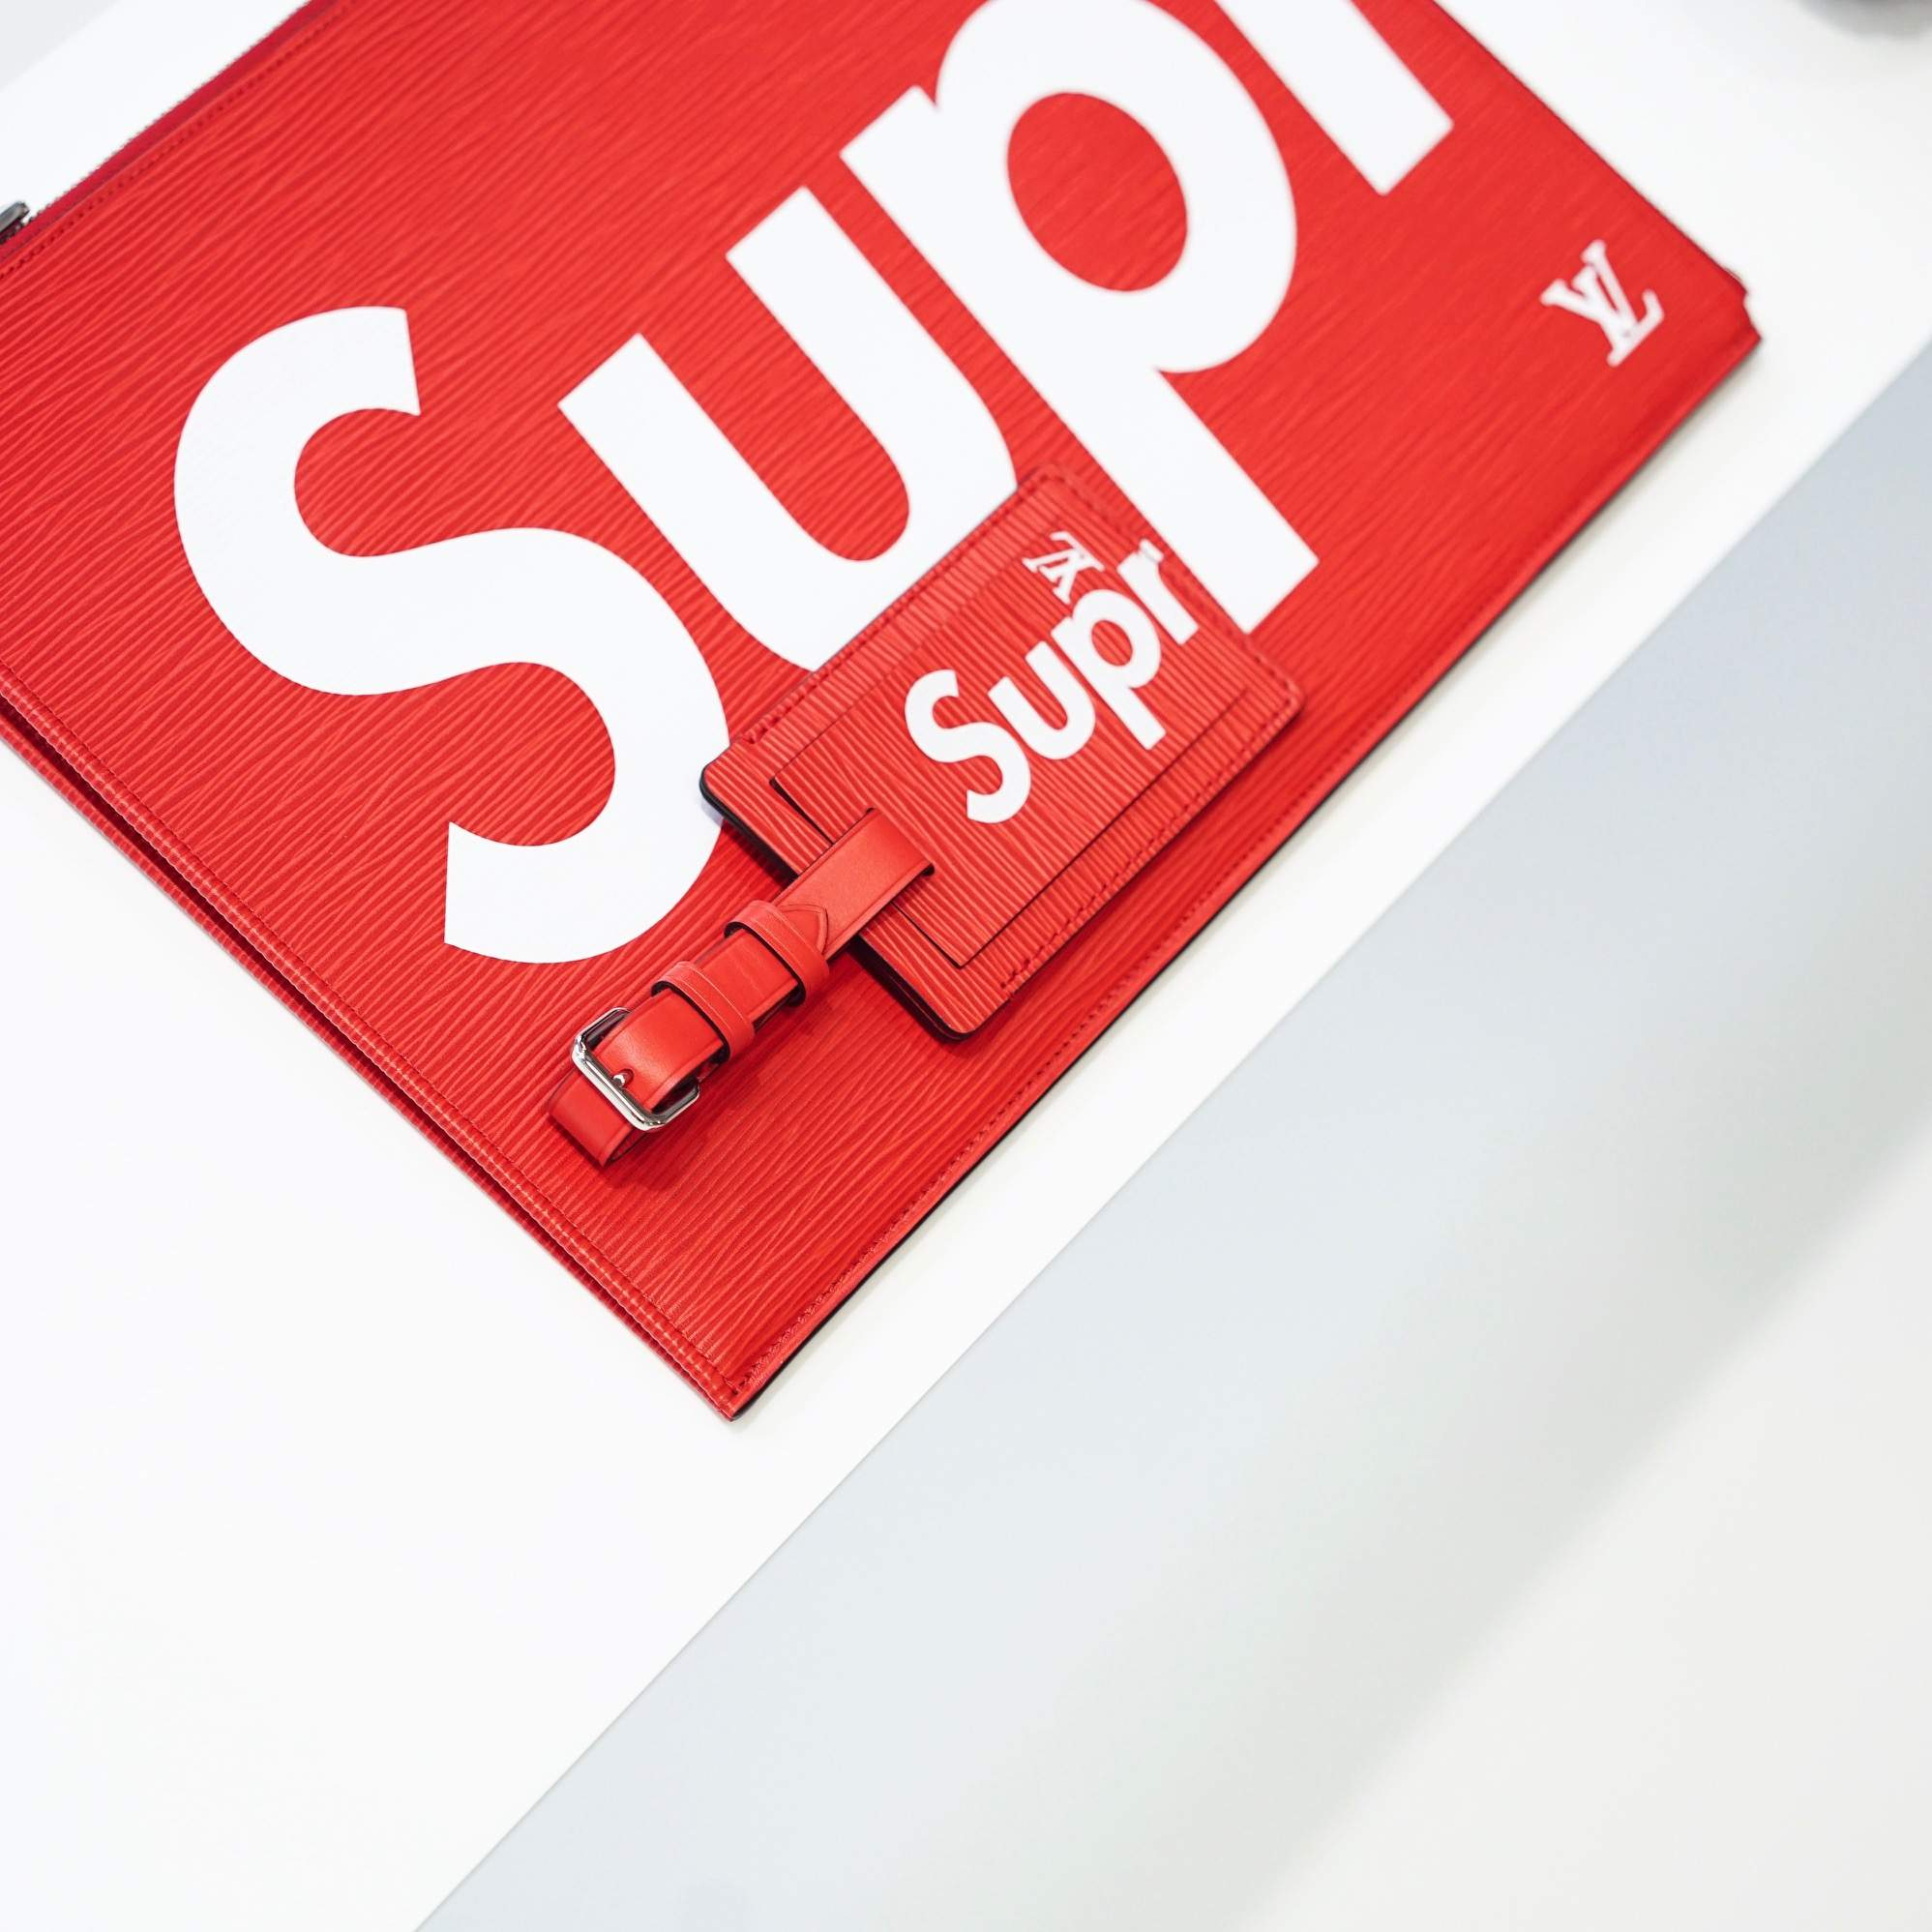 LVxSUPREME-louis-vuitton-supreme__4739